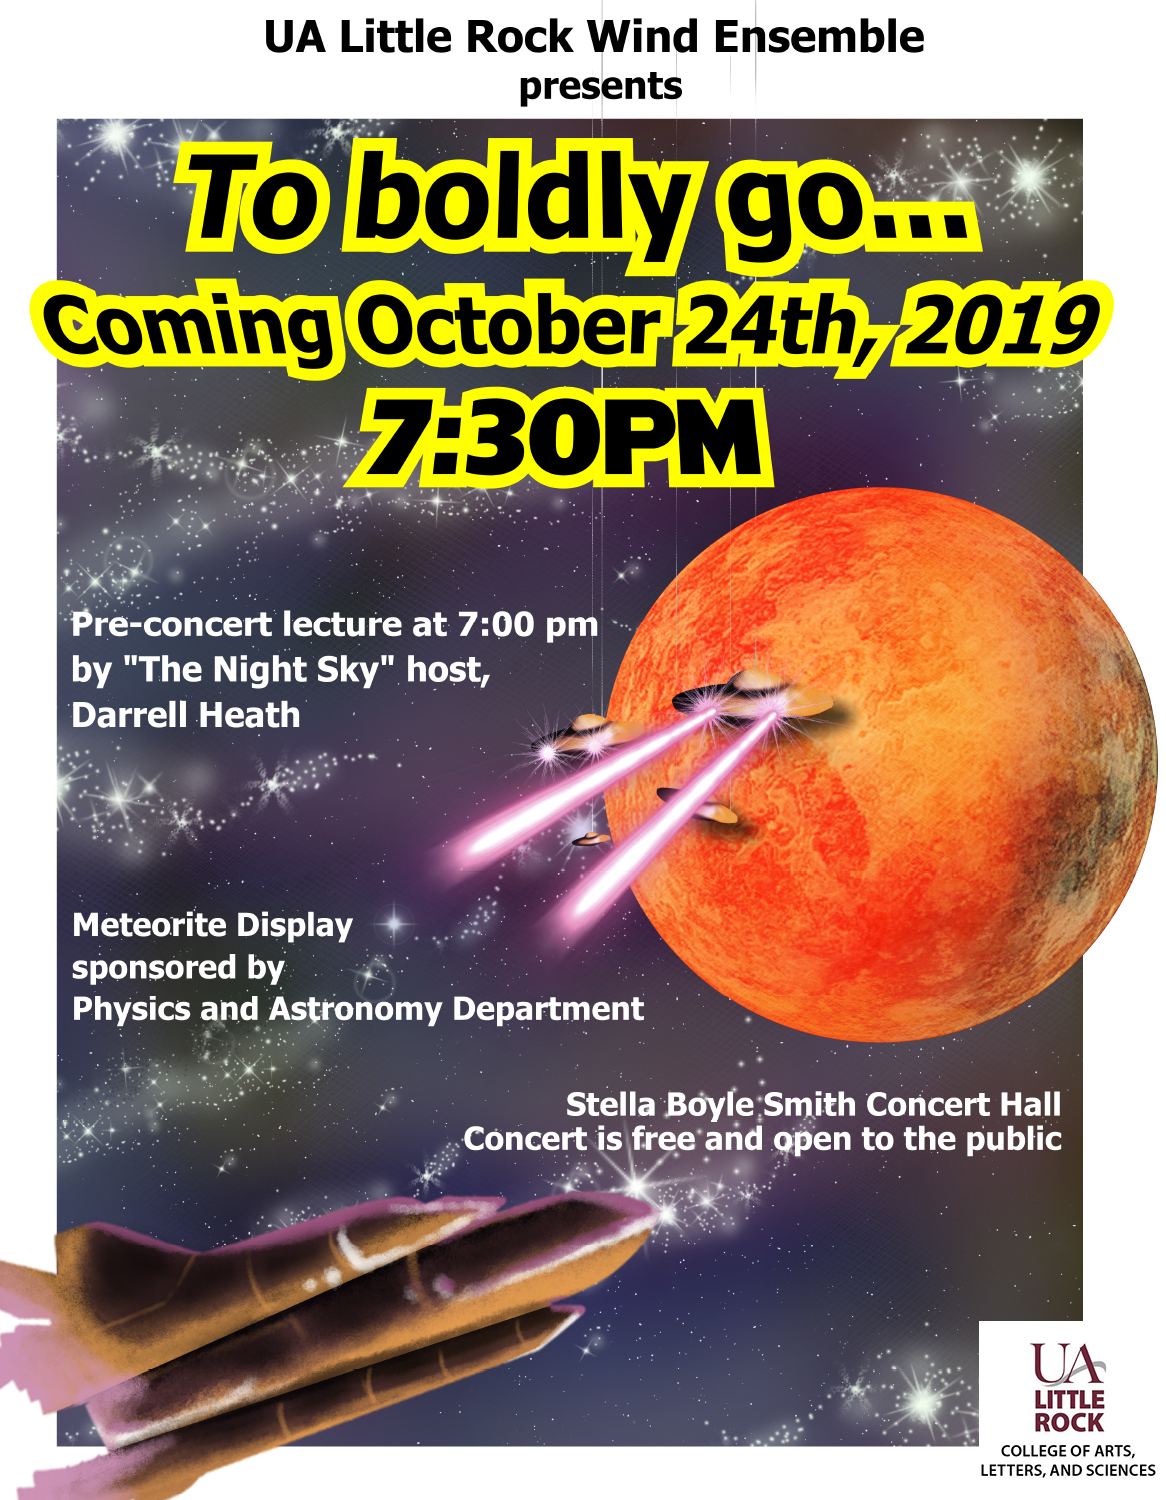 The University of Arkansas at Little Rock Wind Ensemble will host an out-of-this-world concert Oct. 24 featuring a special astronomy lecture and meteorite display.